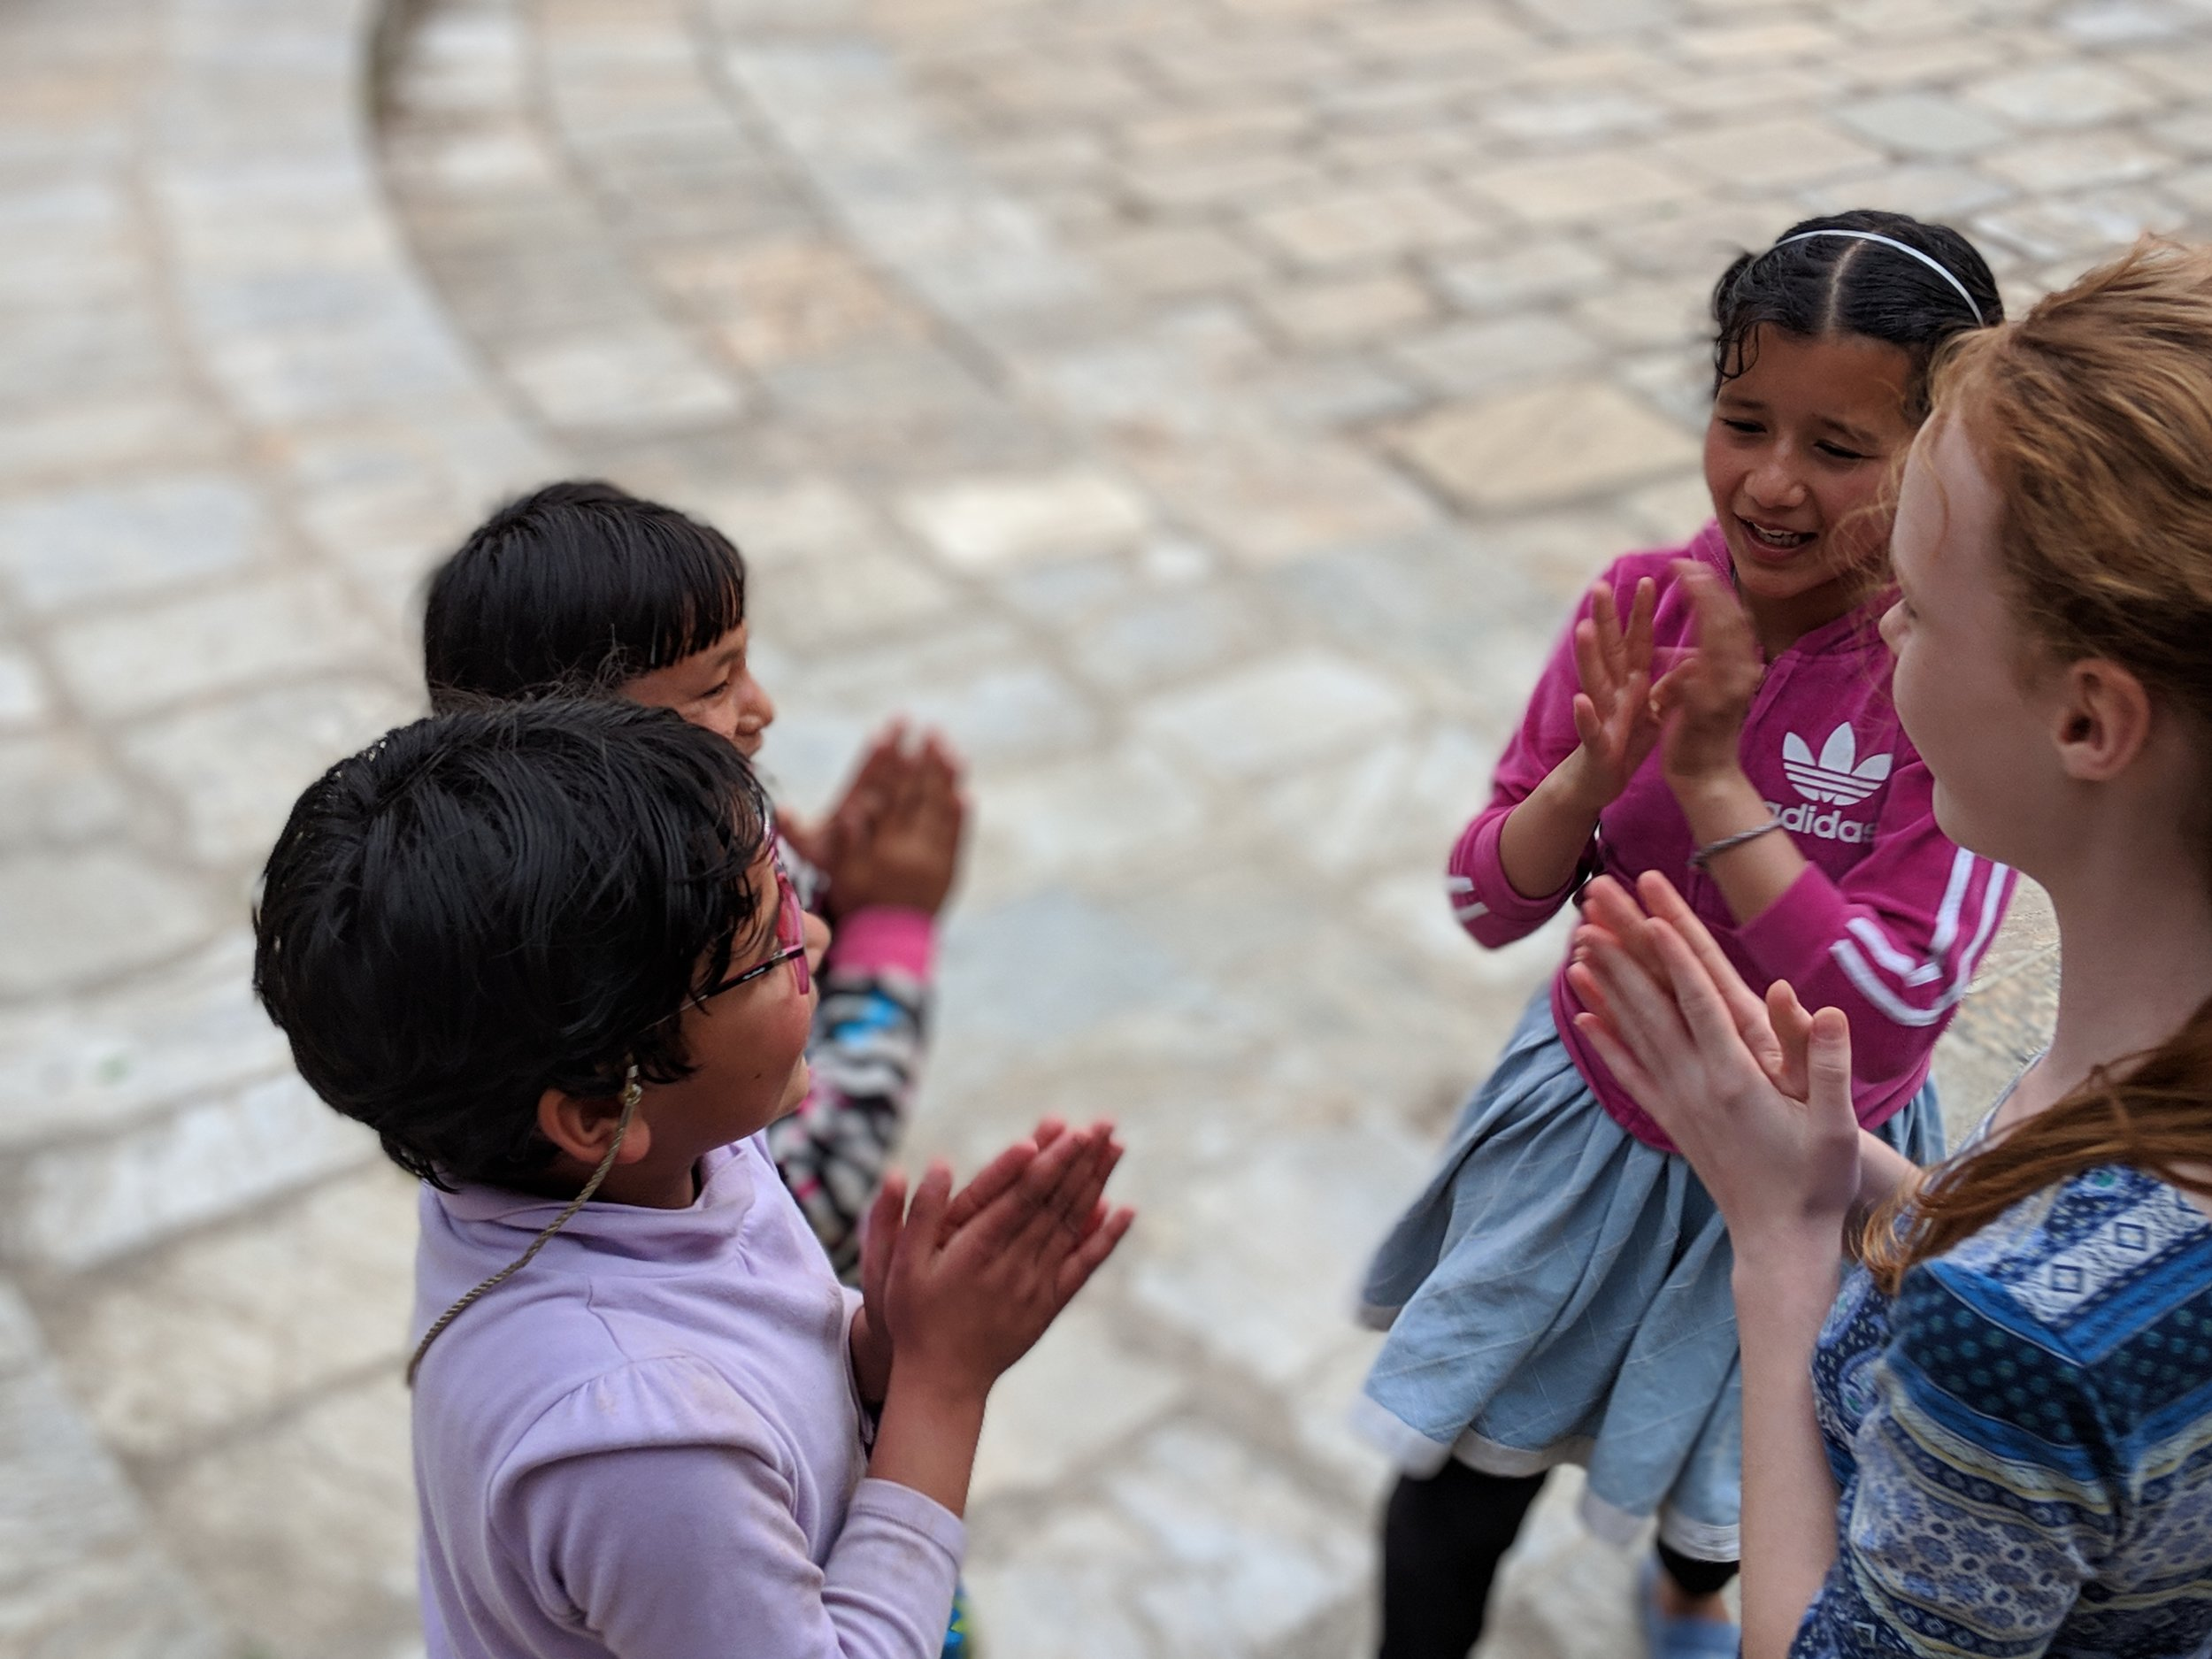 My daughter, Lila, plays a clapping game with a group of girls at Ama Ghar, a children's care home in the Kathmandu valley in Nepal.